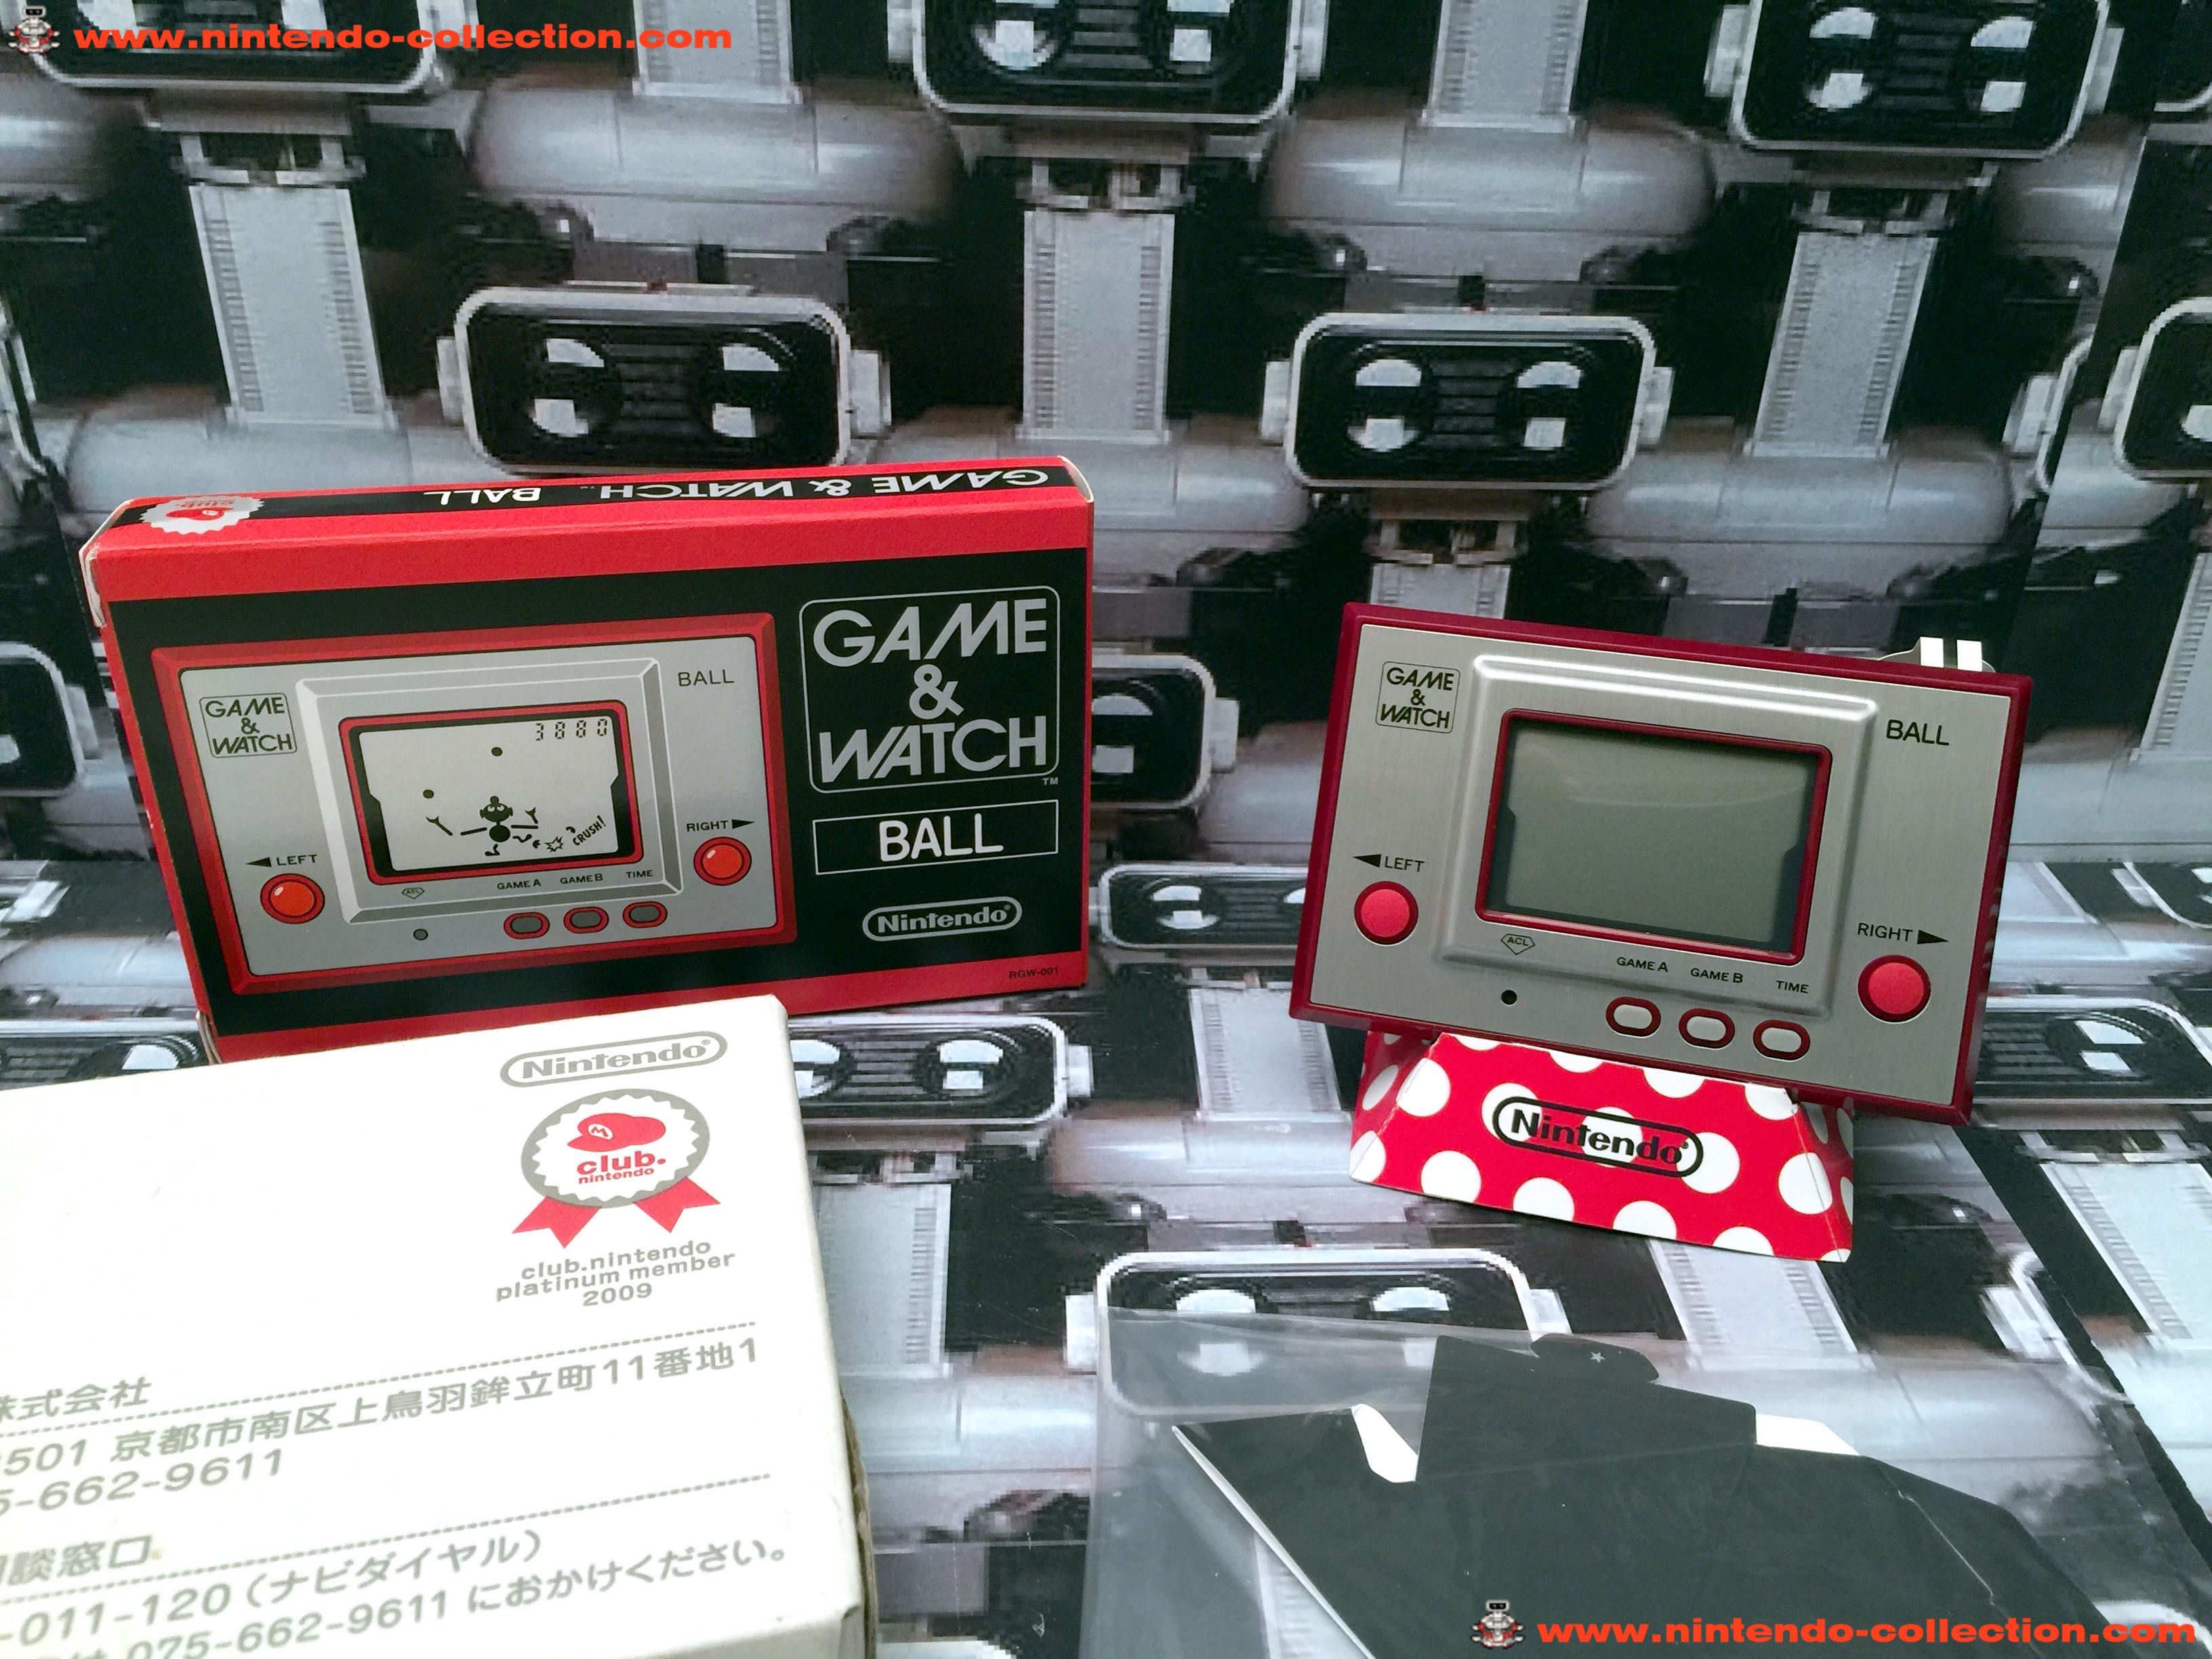 www.nintendo-collection.com - Game & Watch Silver Series Ball Club Nintendo 2009 Japan Japon - 03